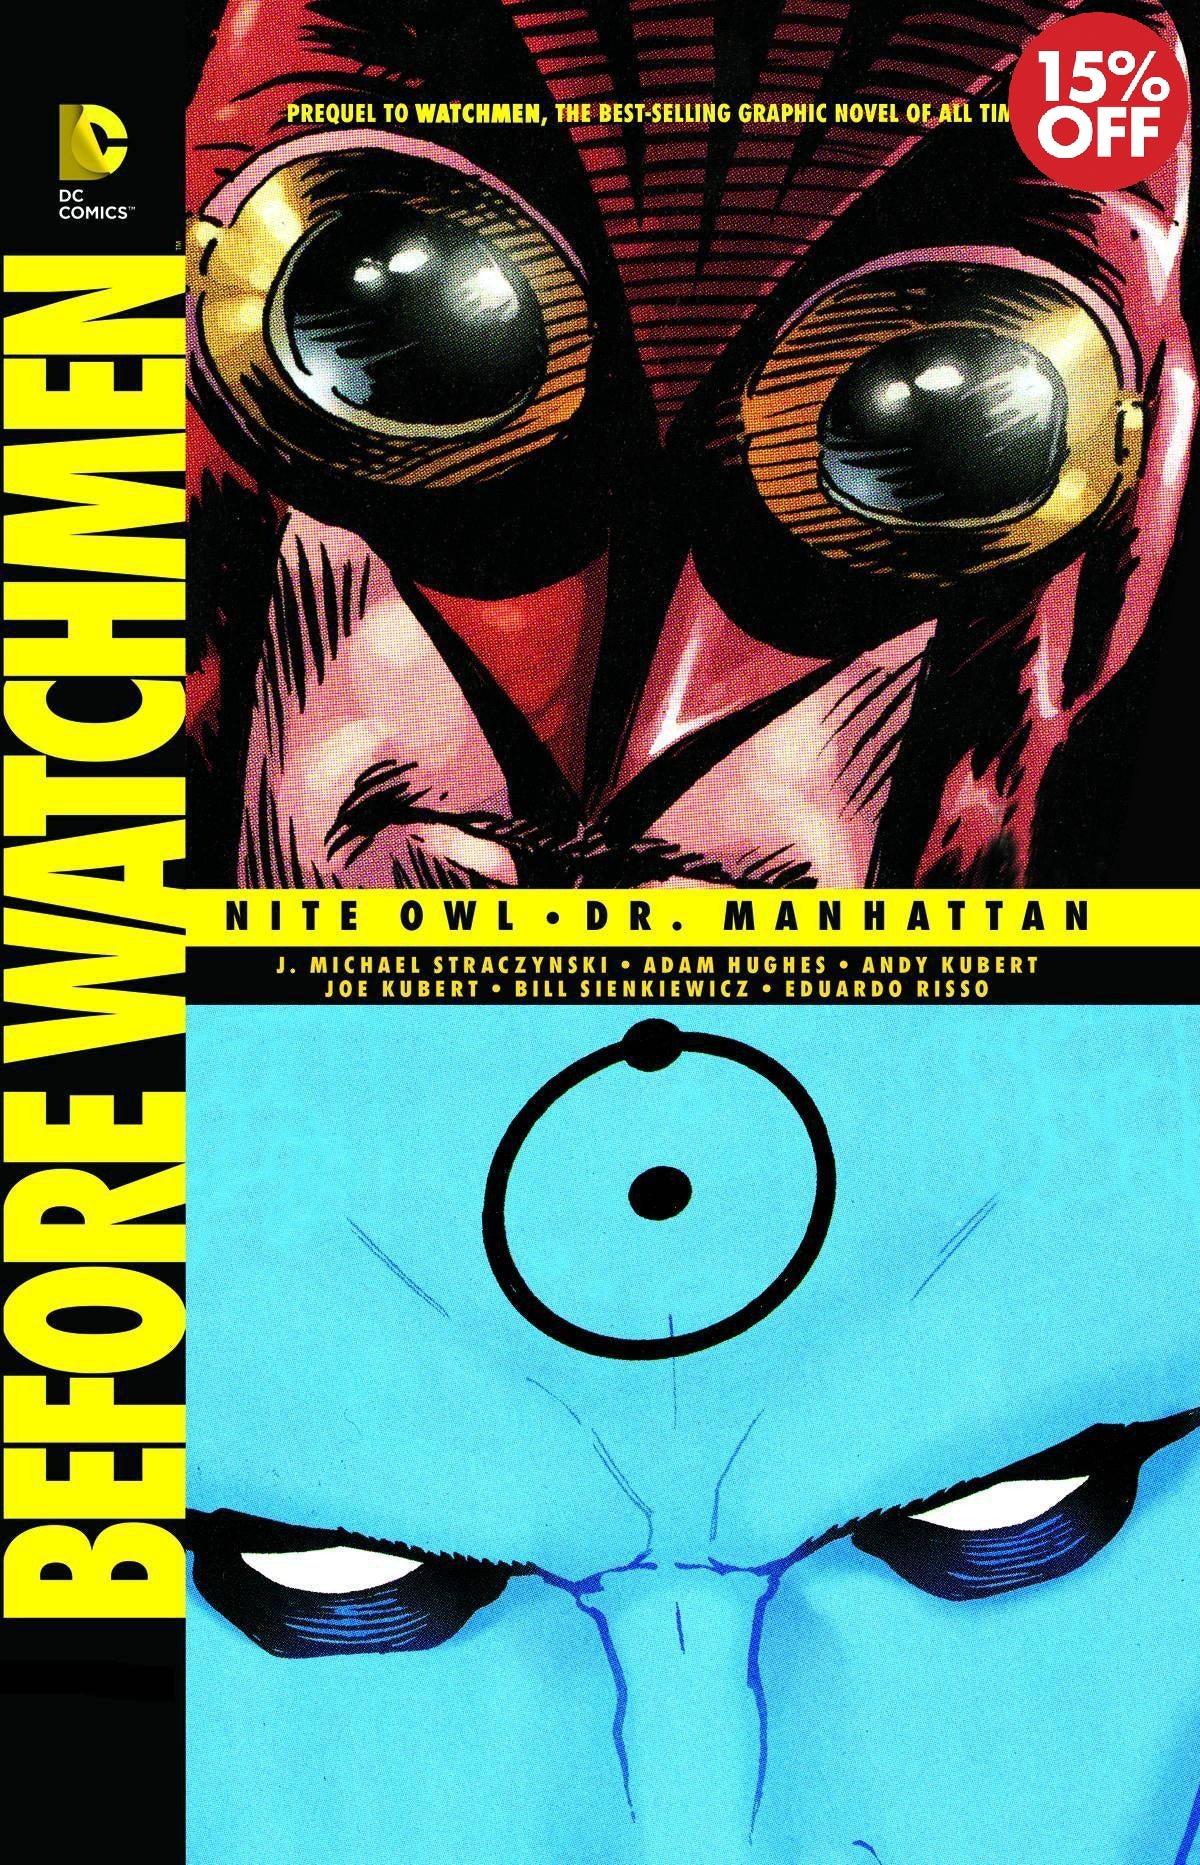 graphic novel and watchmen Looking for a plot summary of the watchmen graphic novel comic book we have plot descriptions of all 12 chapters of watchmen by alan moore.